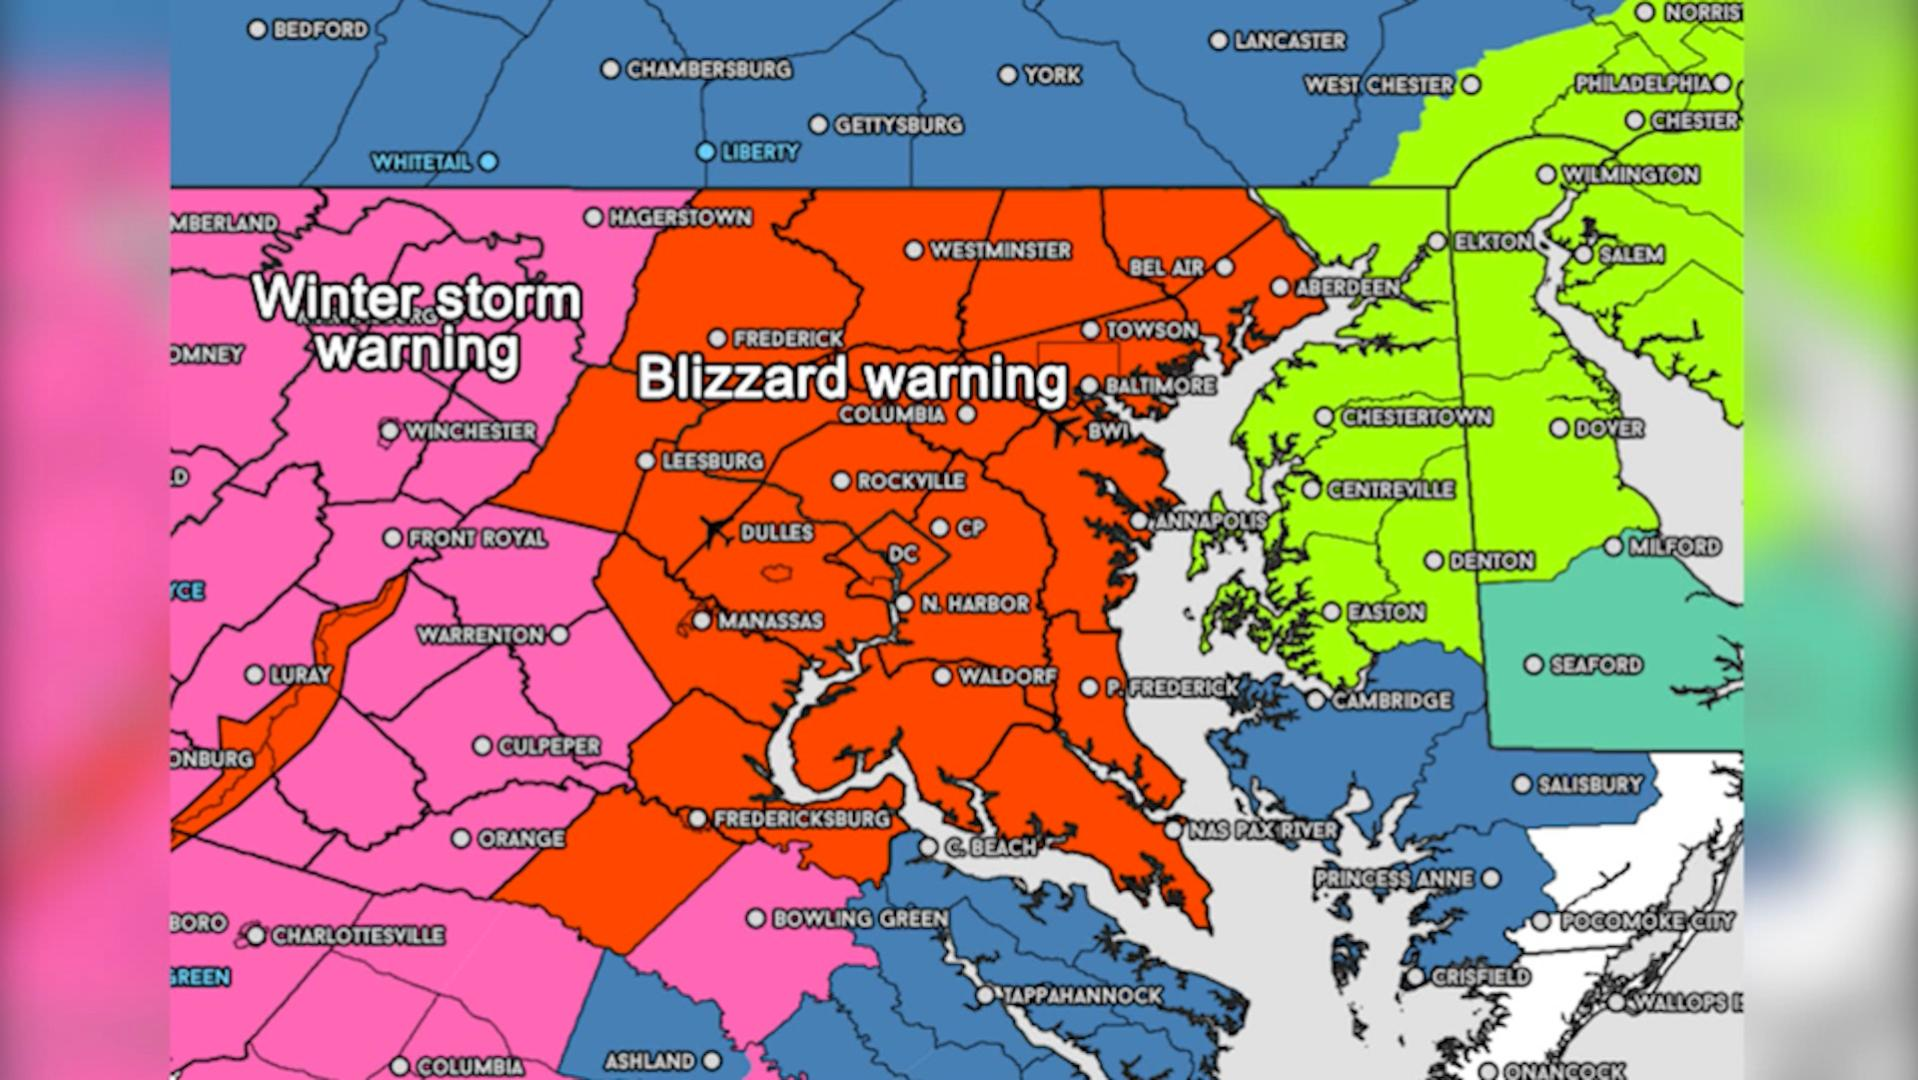 Severe, long-duration snowstorm begins Friday, blizzard watch in effect